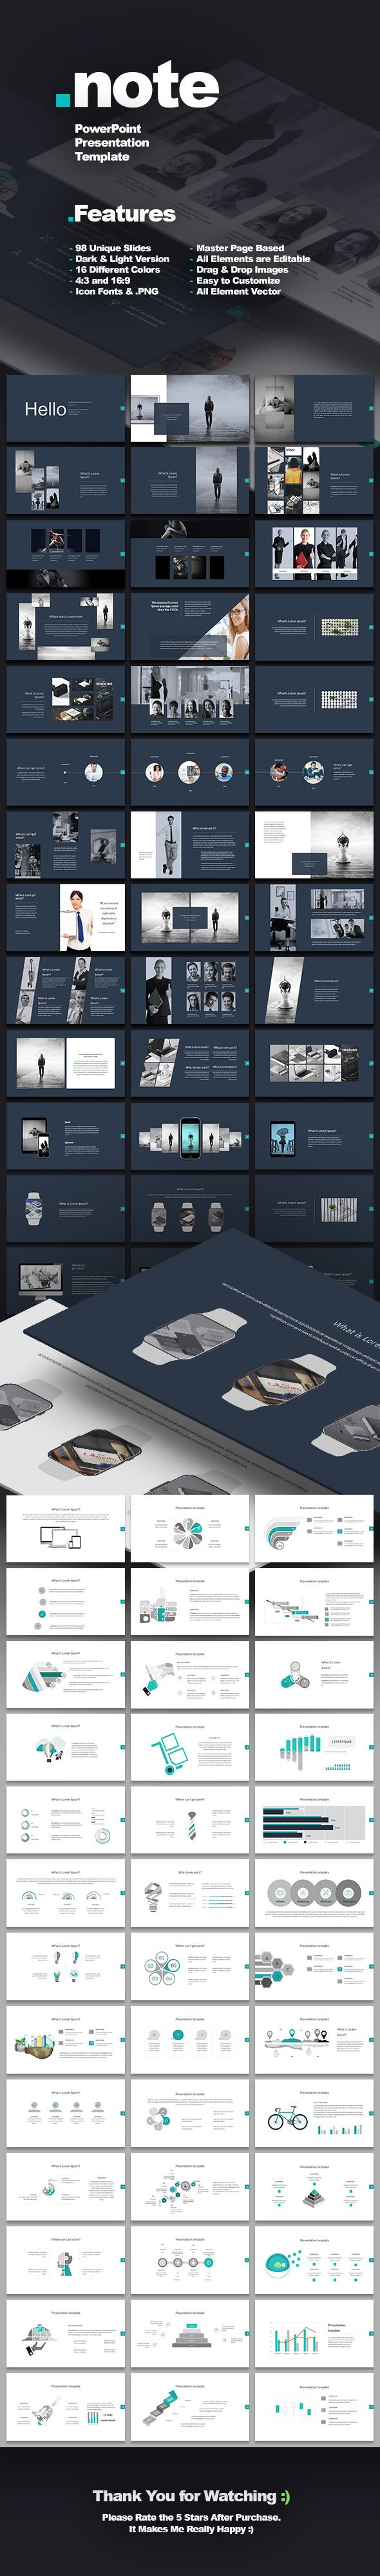 Poster design templates powerpoint - Note Business Powerpoint Template